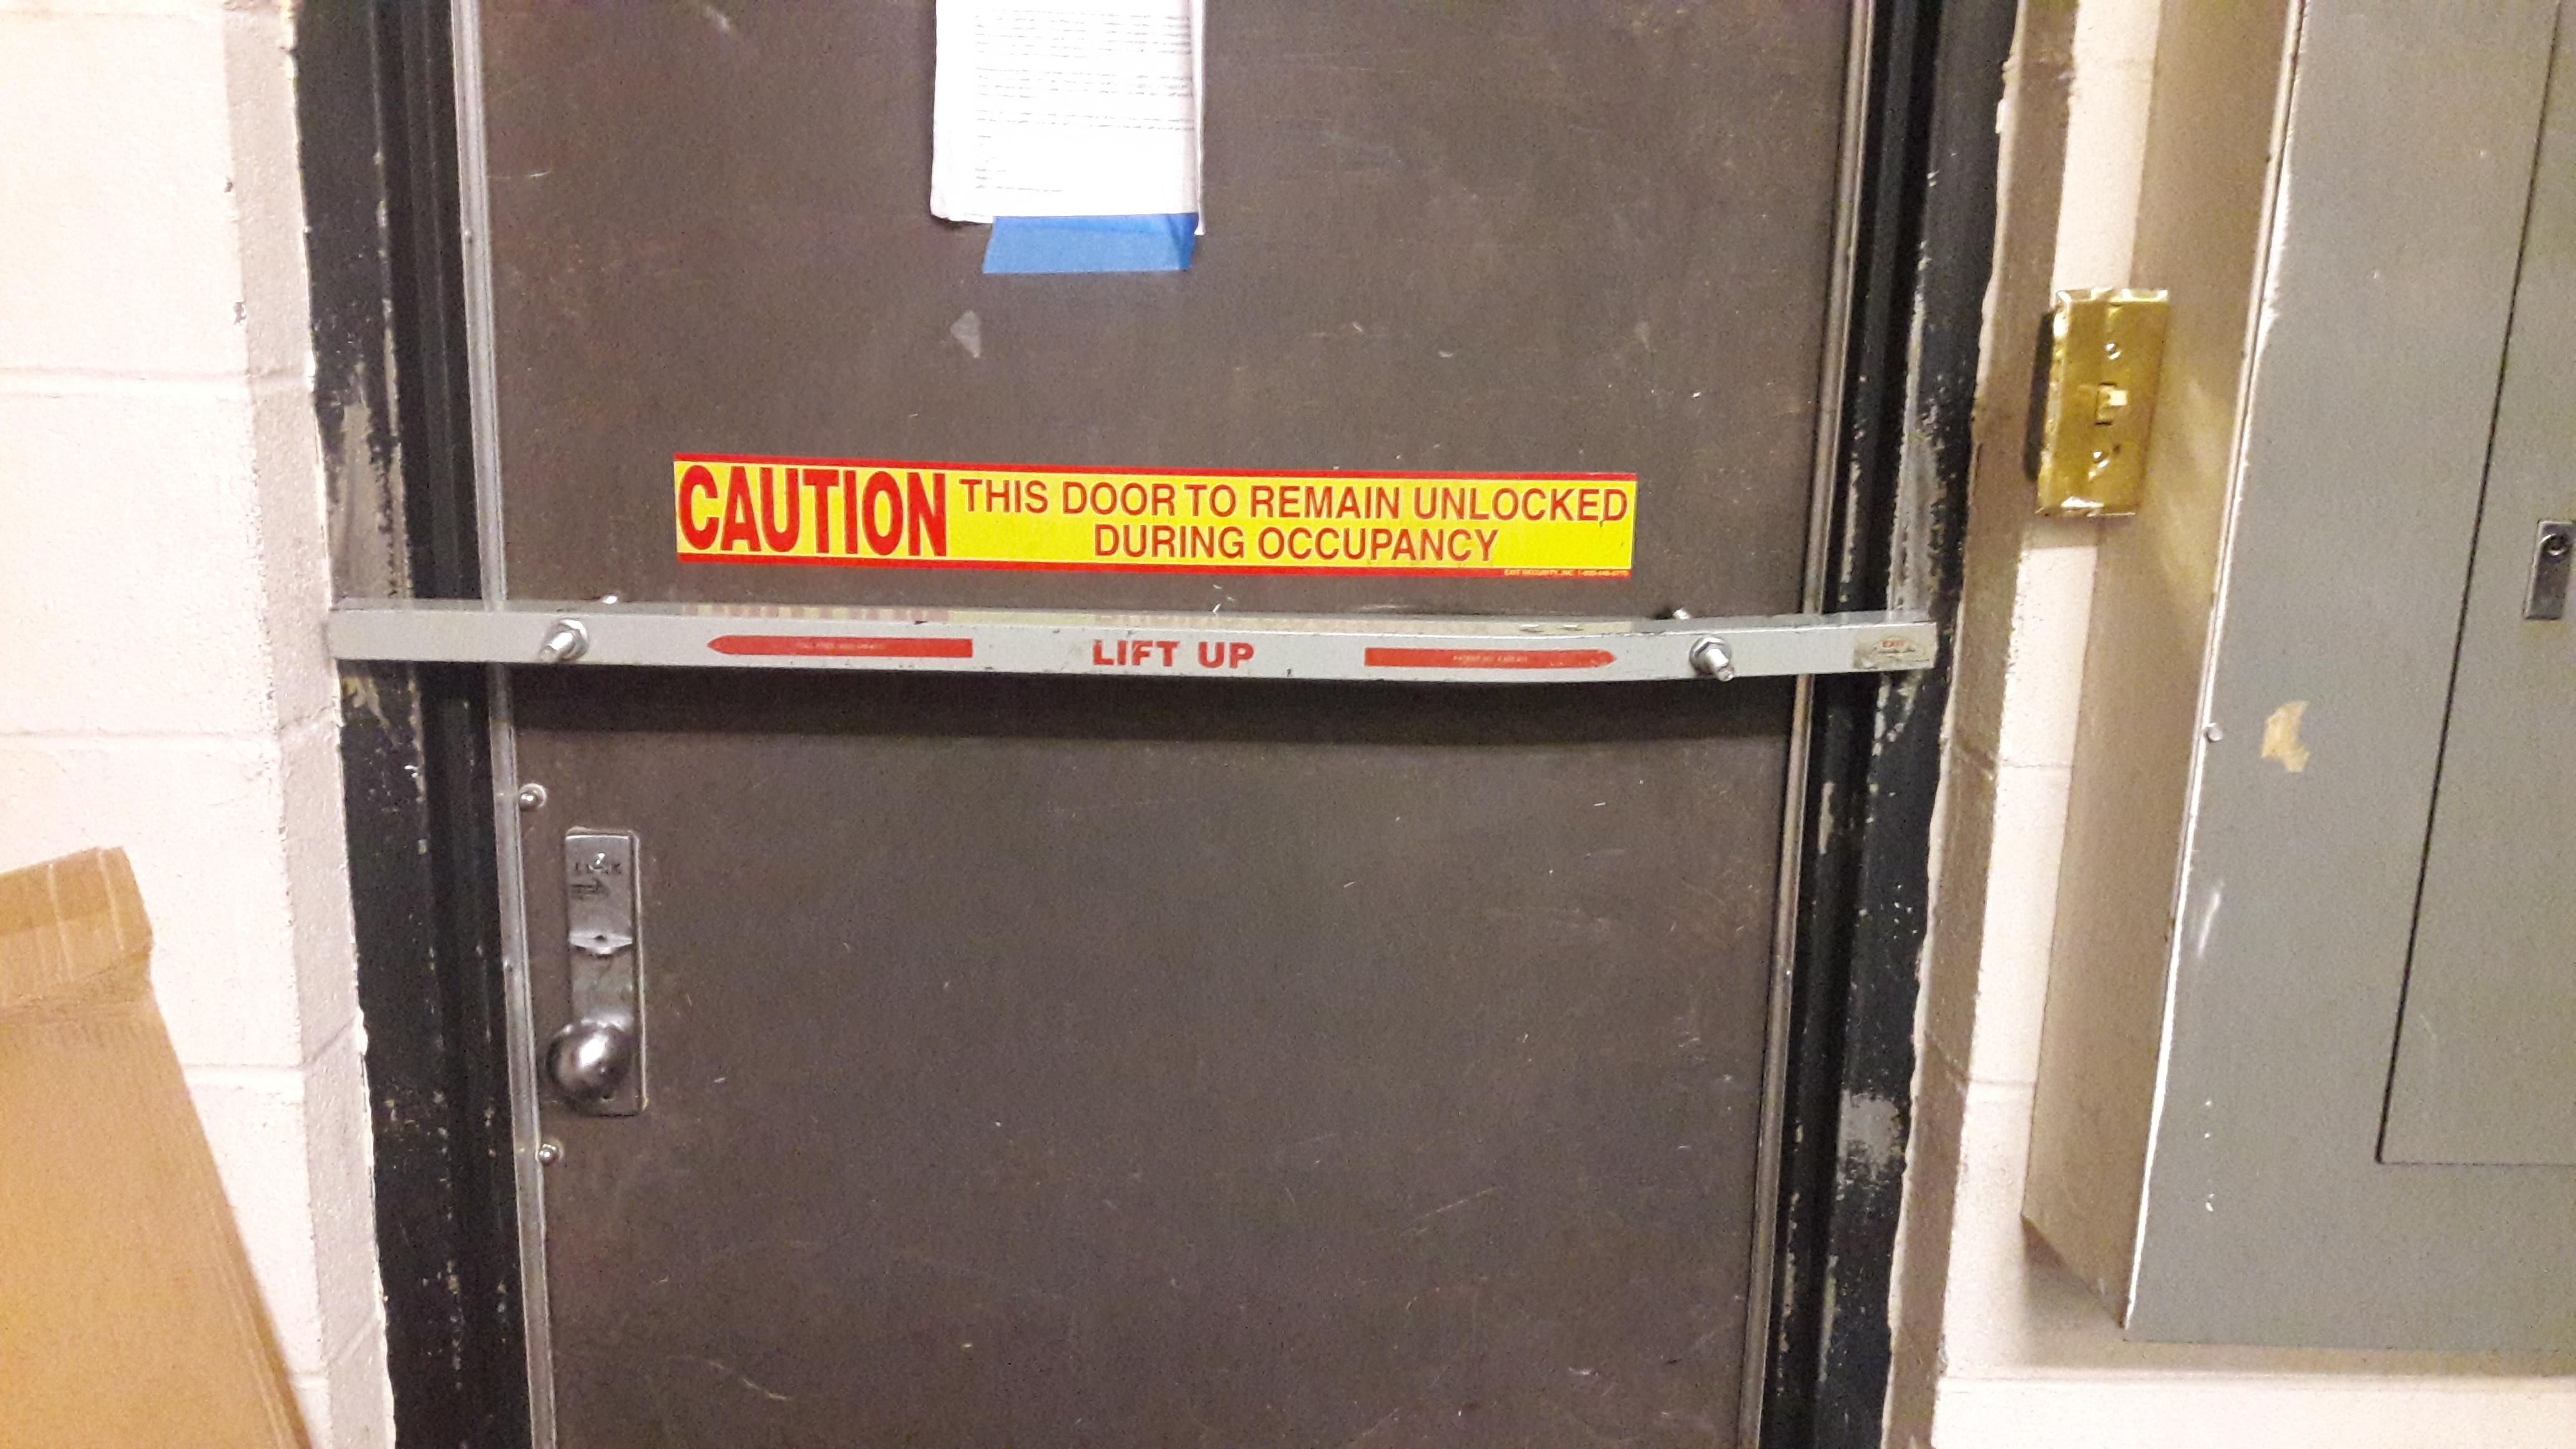 It's also locked in case you're wondering forklift osha